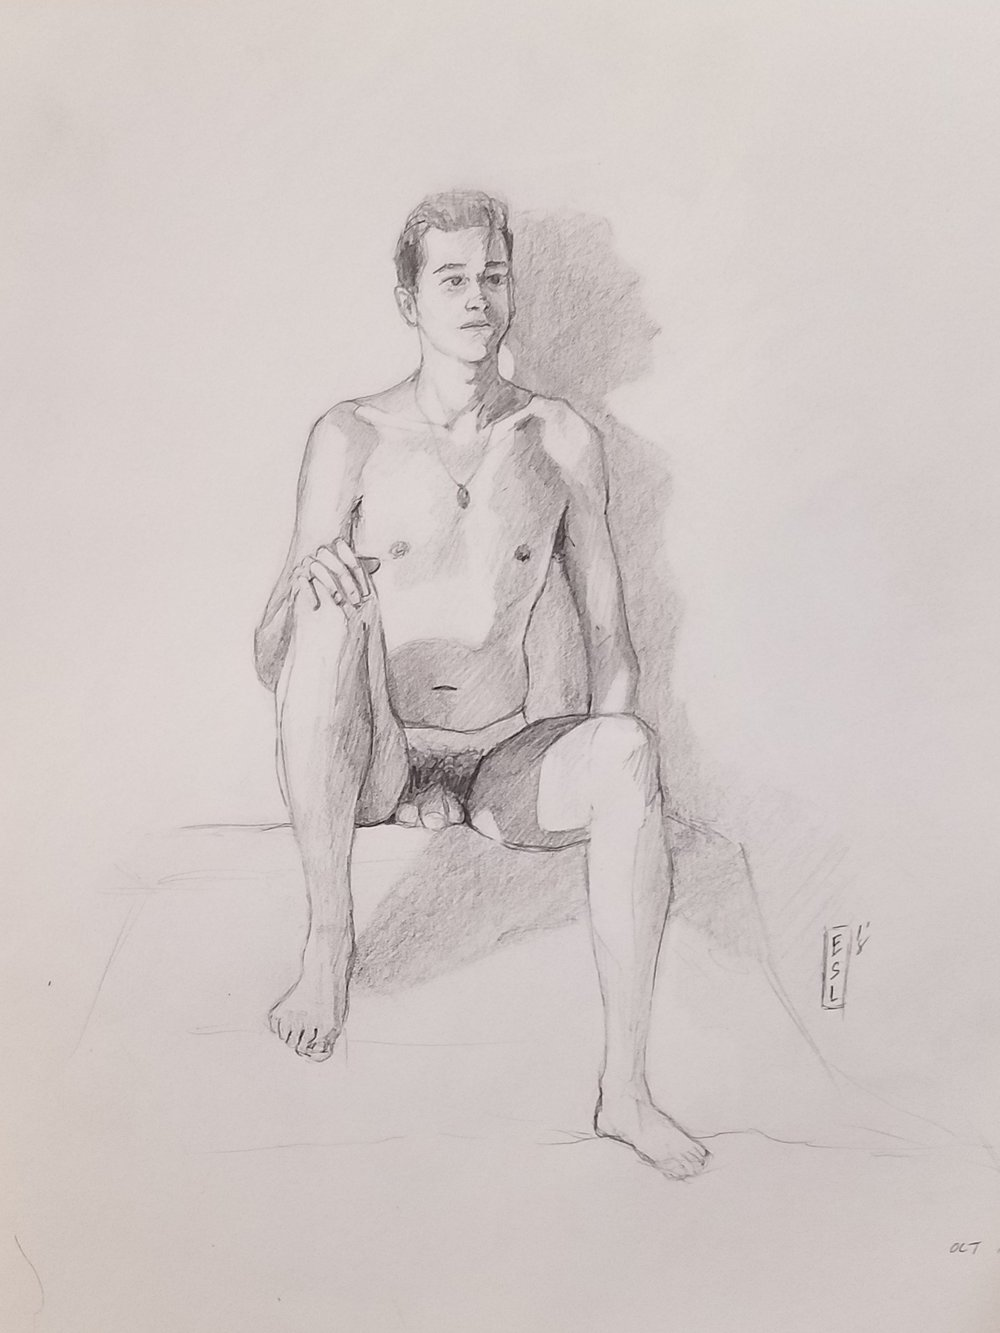 October 25th, 2018 figure drawing